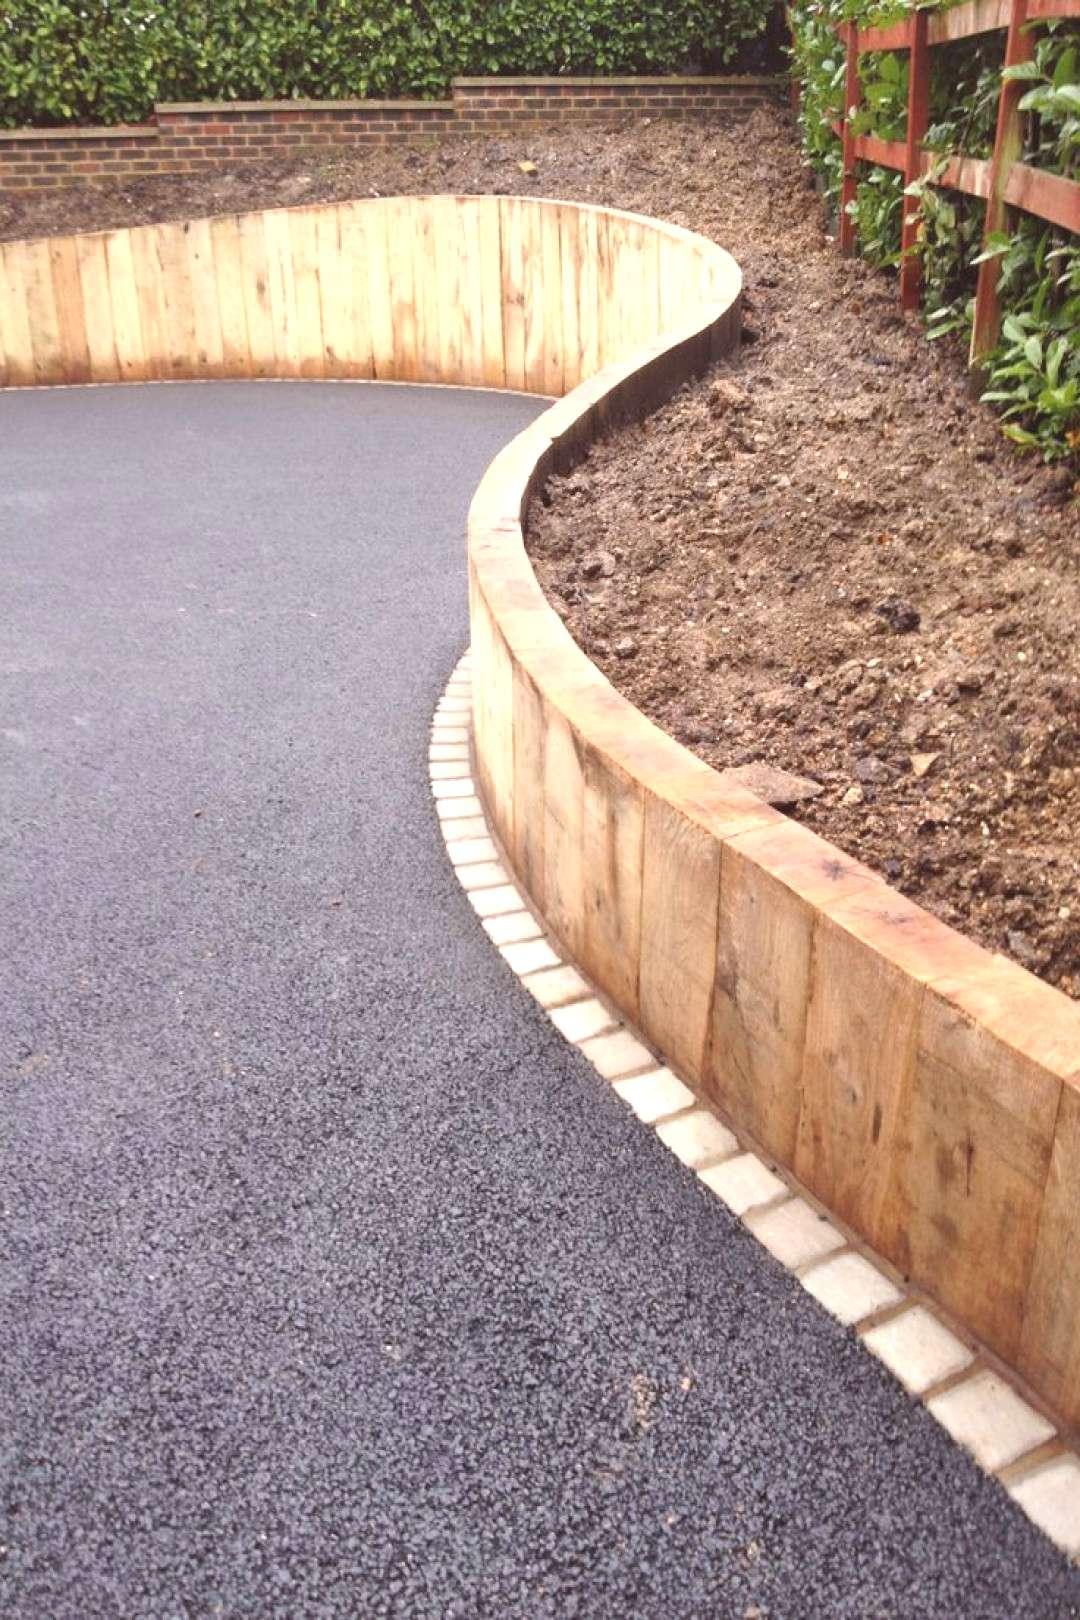 Railway Sleepers Retaining Wall U97 About Comfy Interior Decor Home with Railway Sleepers Retaining